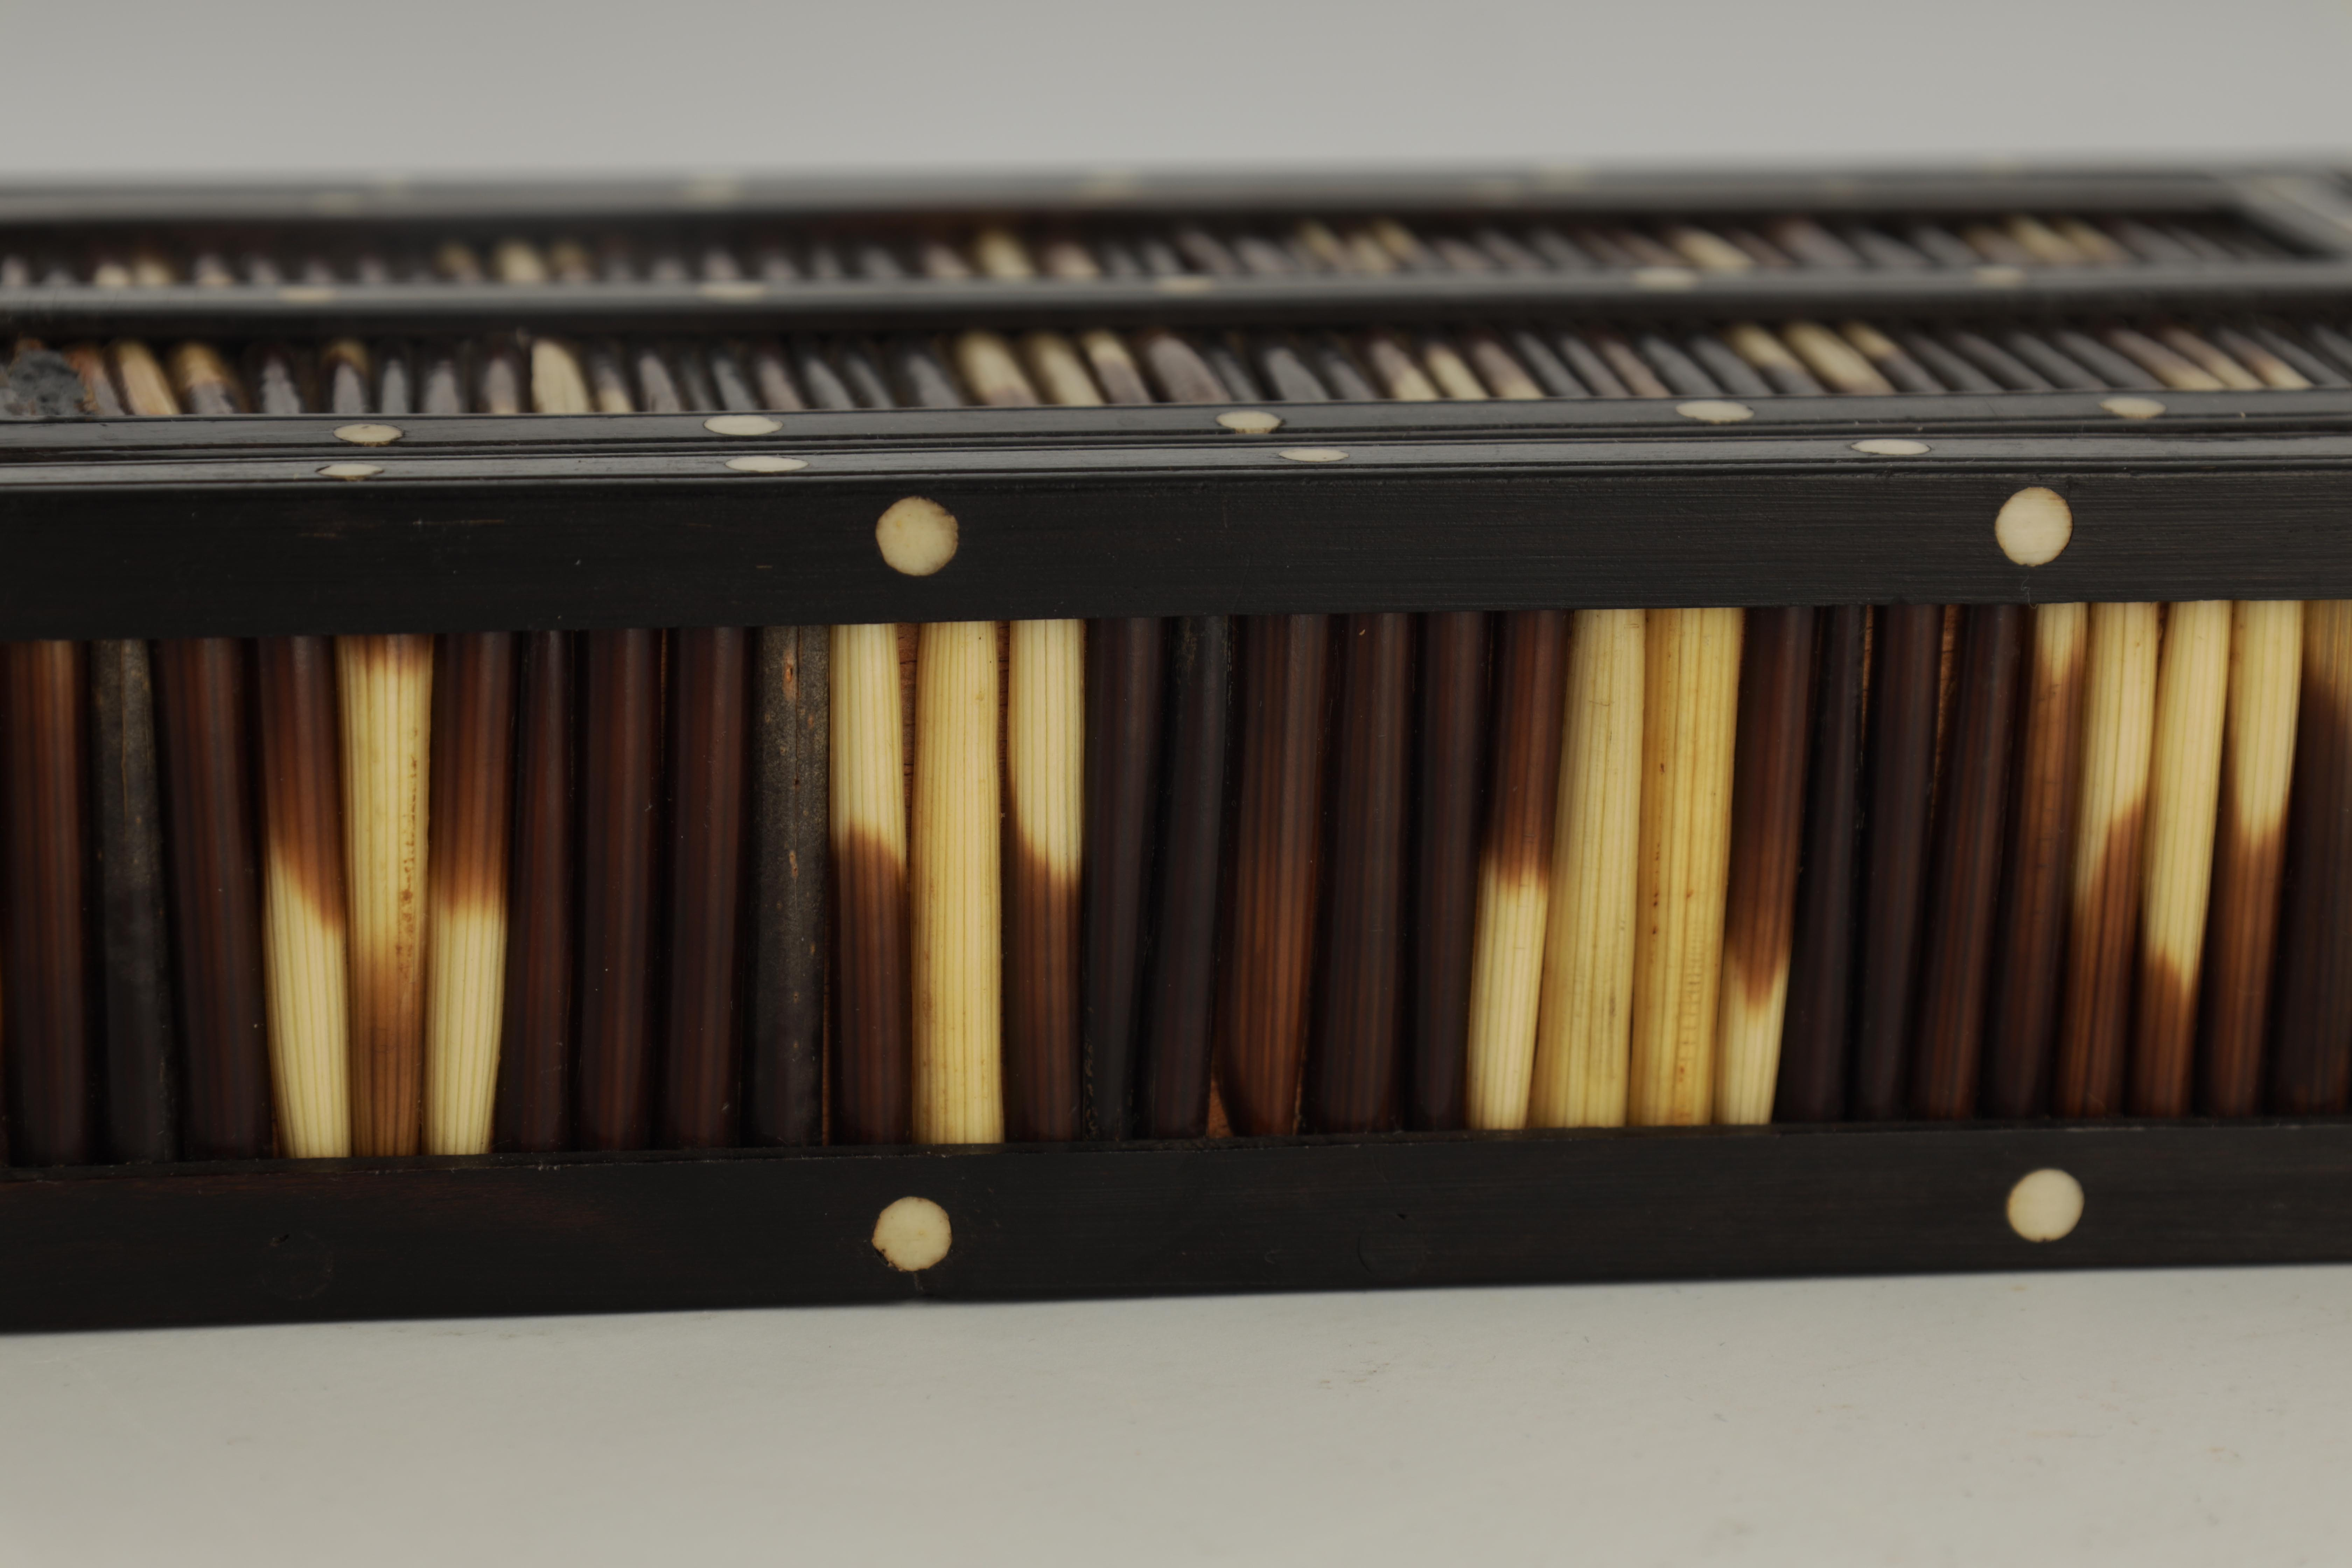 A 19TH CENTURY QUILL BOX with ebony and bone inlaid edges 17cm wide 9.5cm deep 4.5cm high - Image 2 of 7